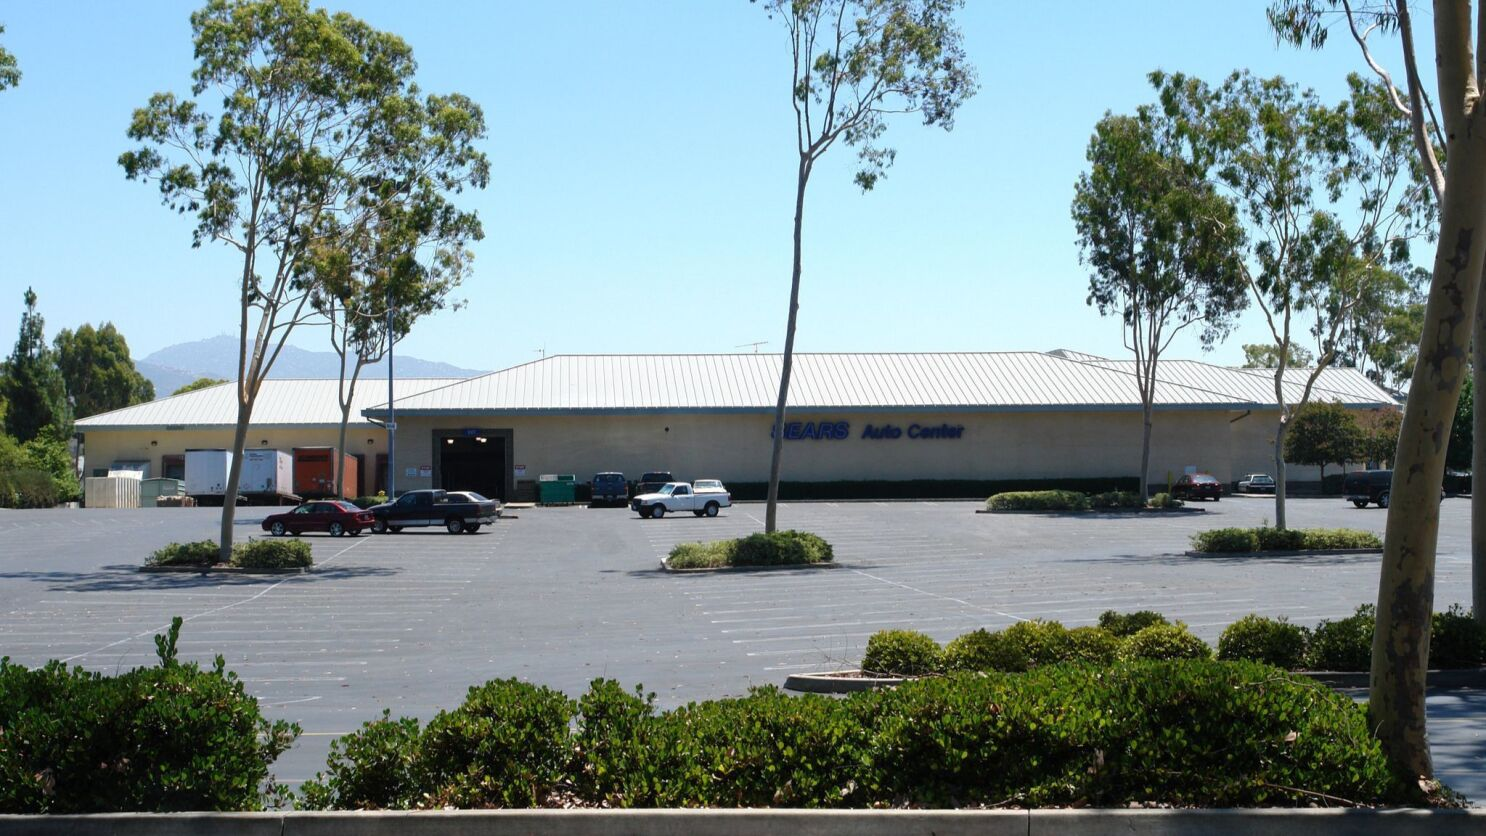 5401606ad434 Can Sears save these 4 San Diego stores  - The San Diego Union-Tribune